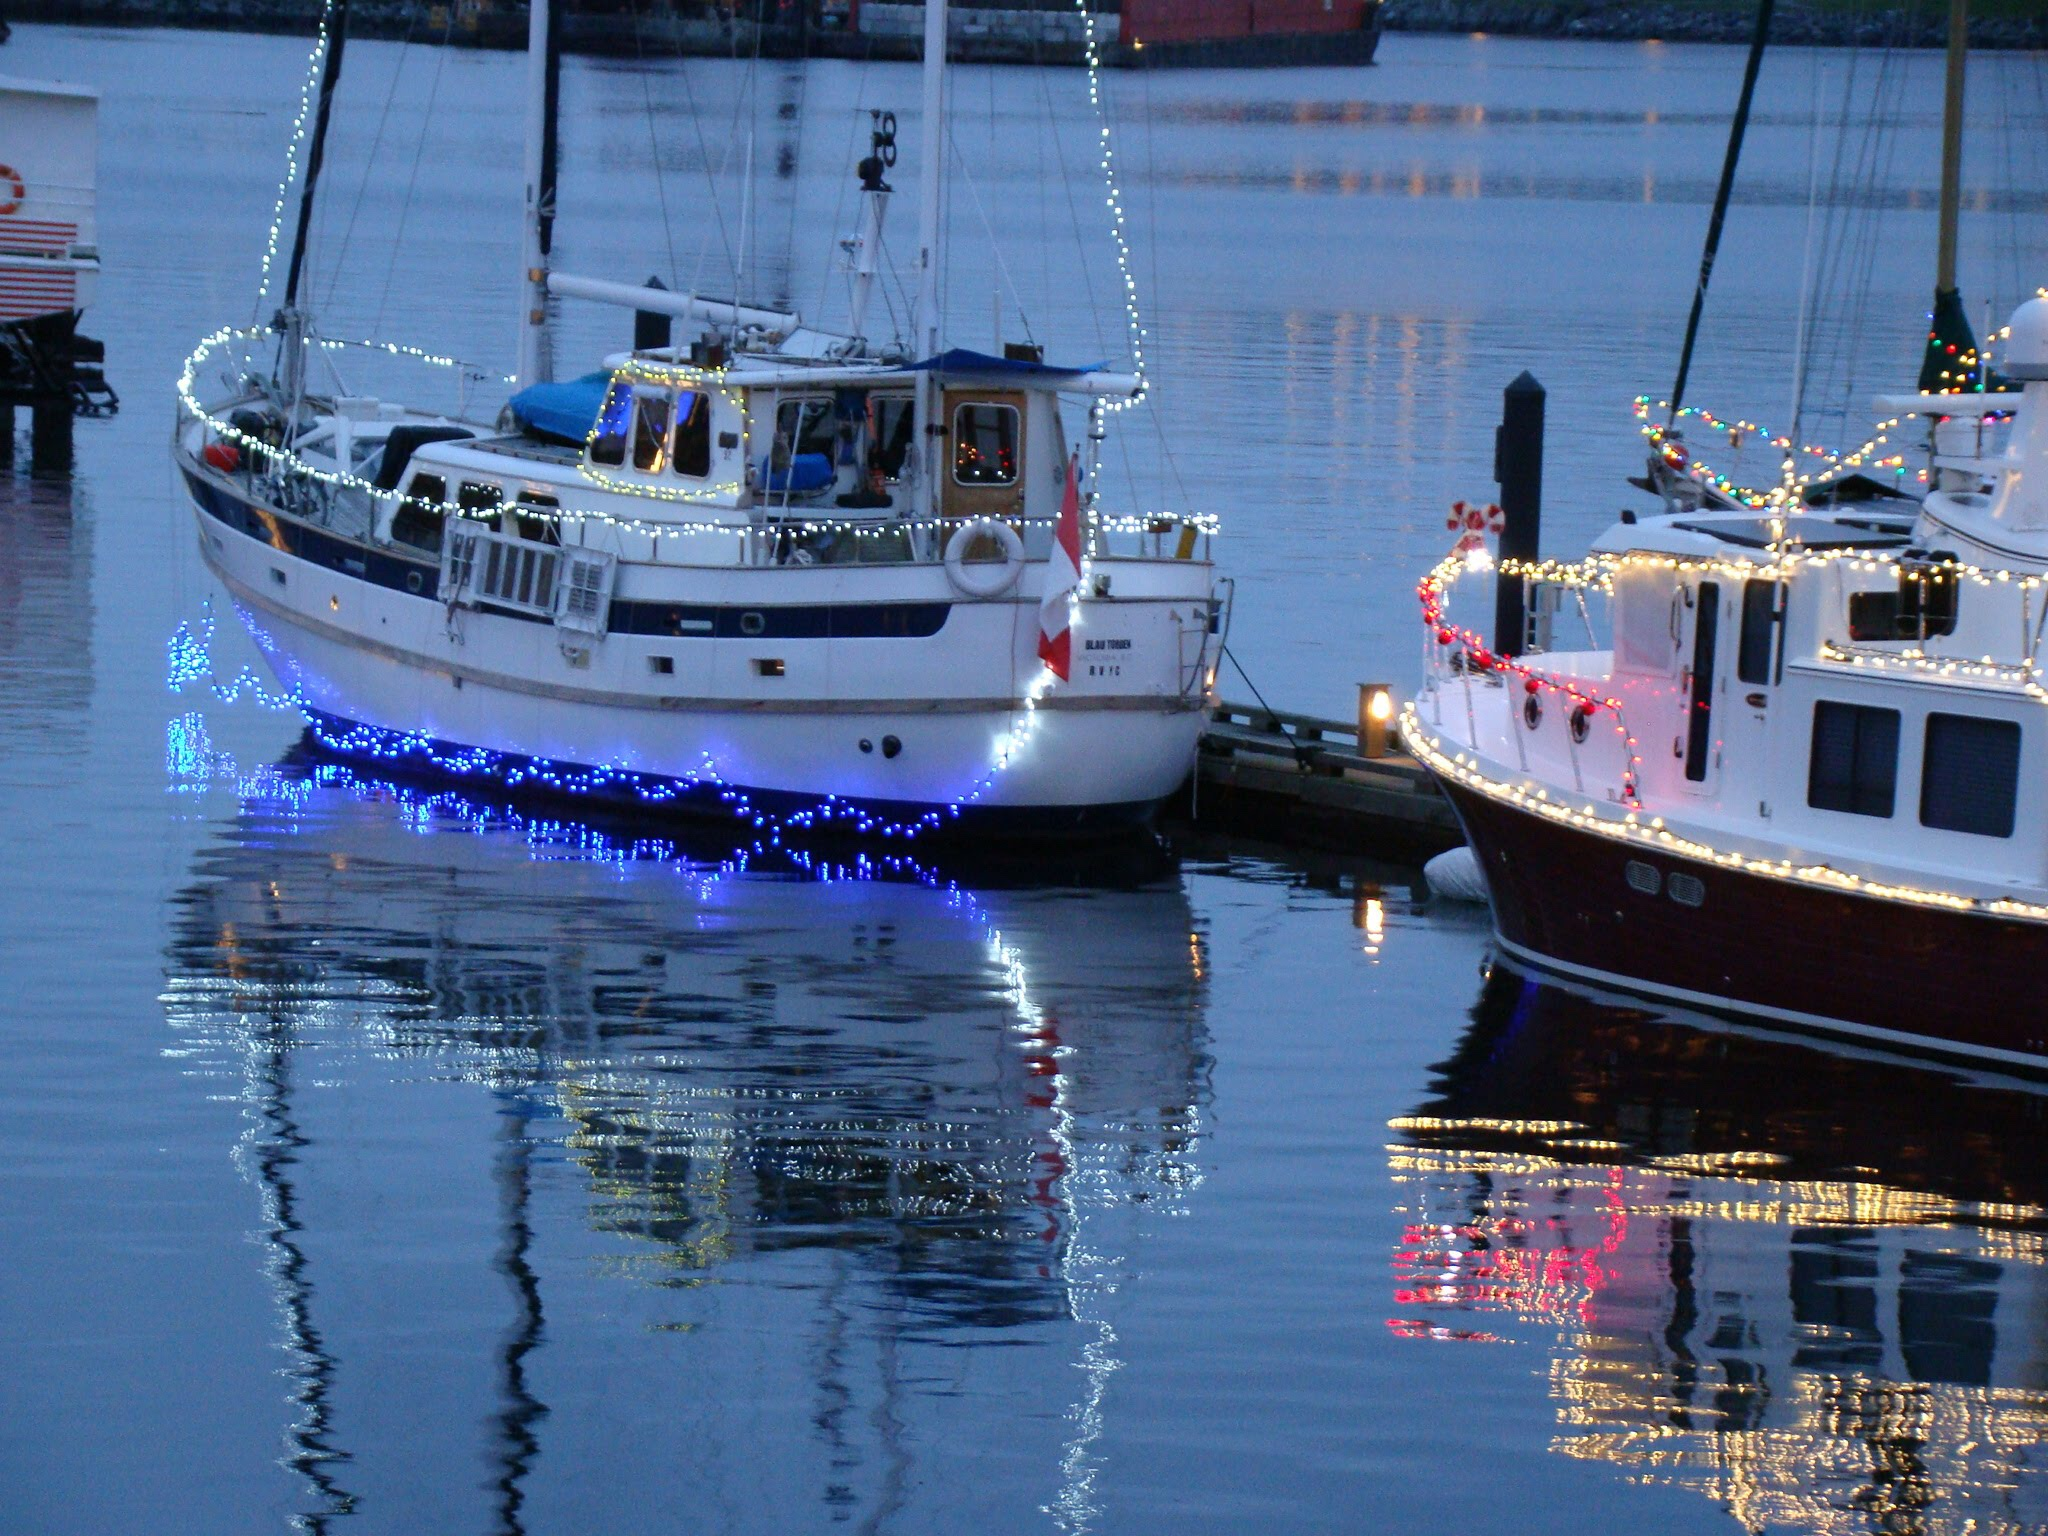 Boats in Victoria's Inner Harbour, decorated with Christmas lights reflecting in the water